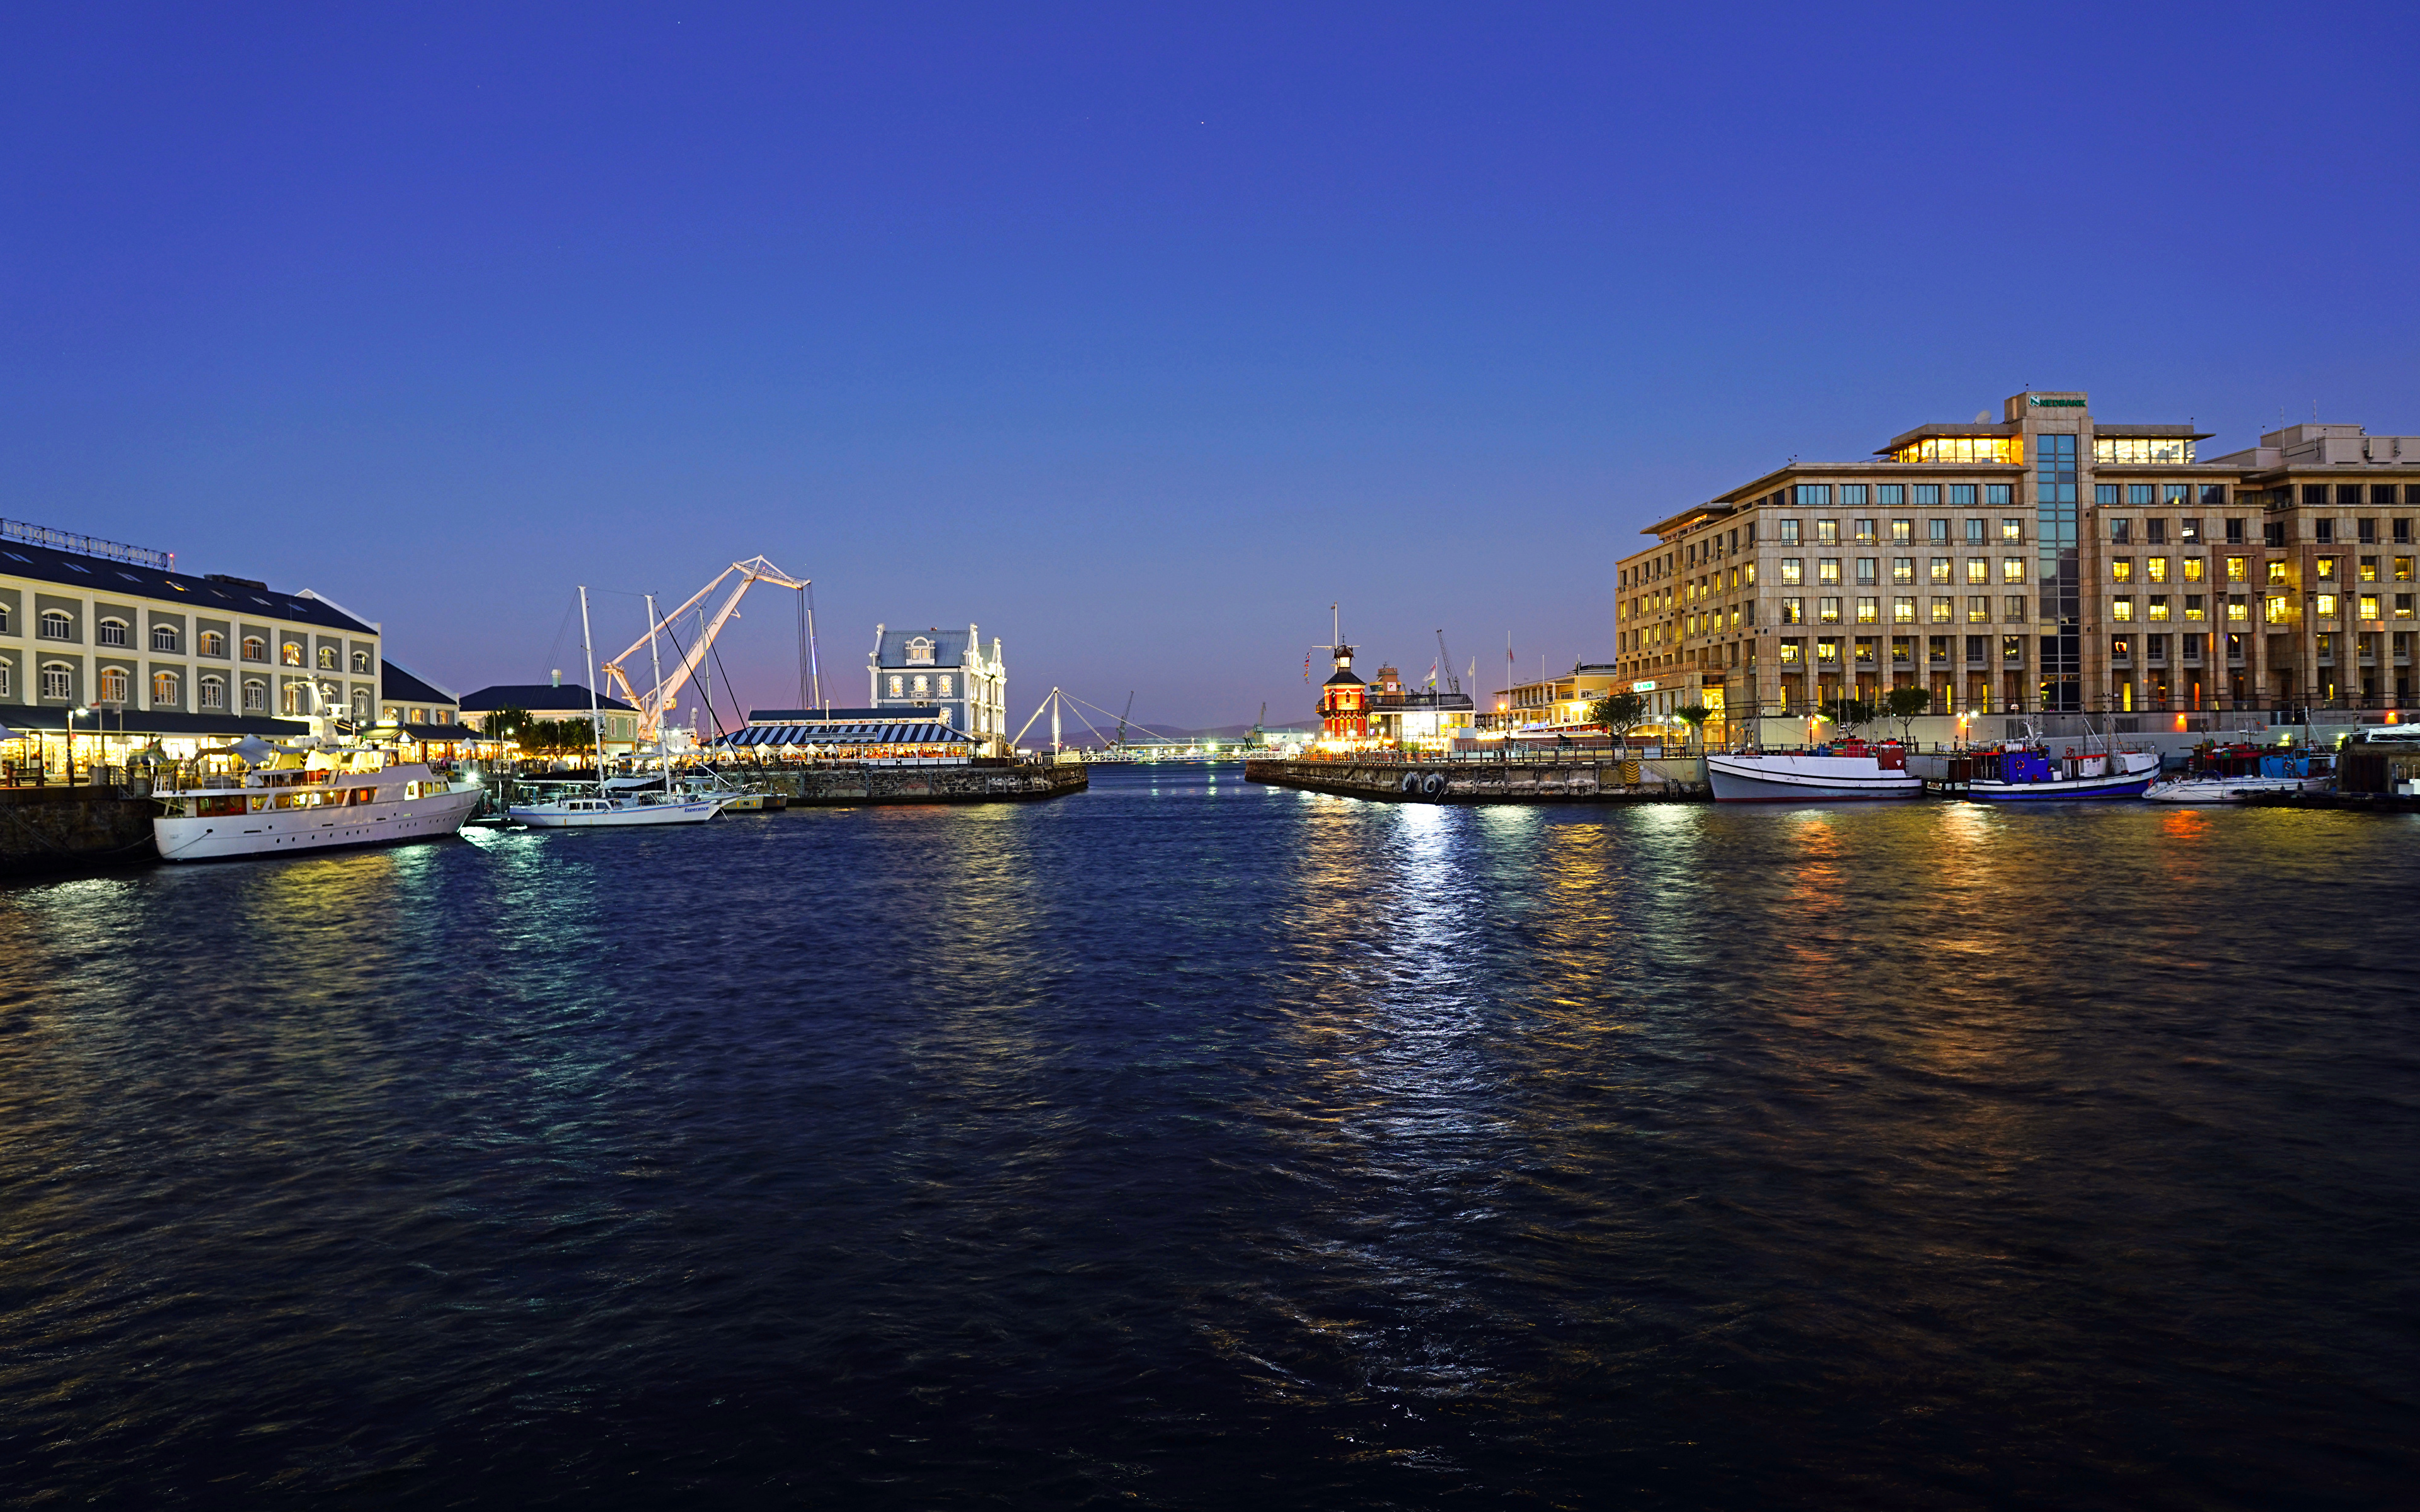 Wallpaper South Africa Cape Town Rivers Evening Marinas